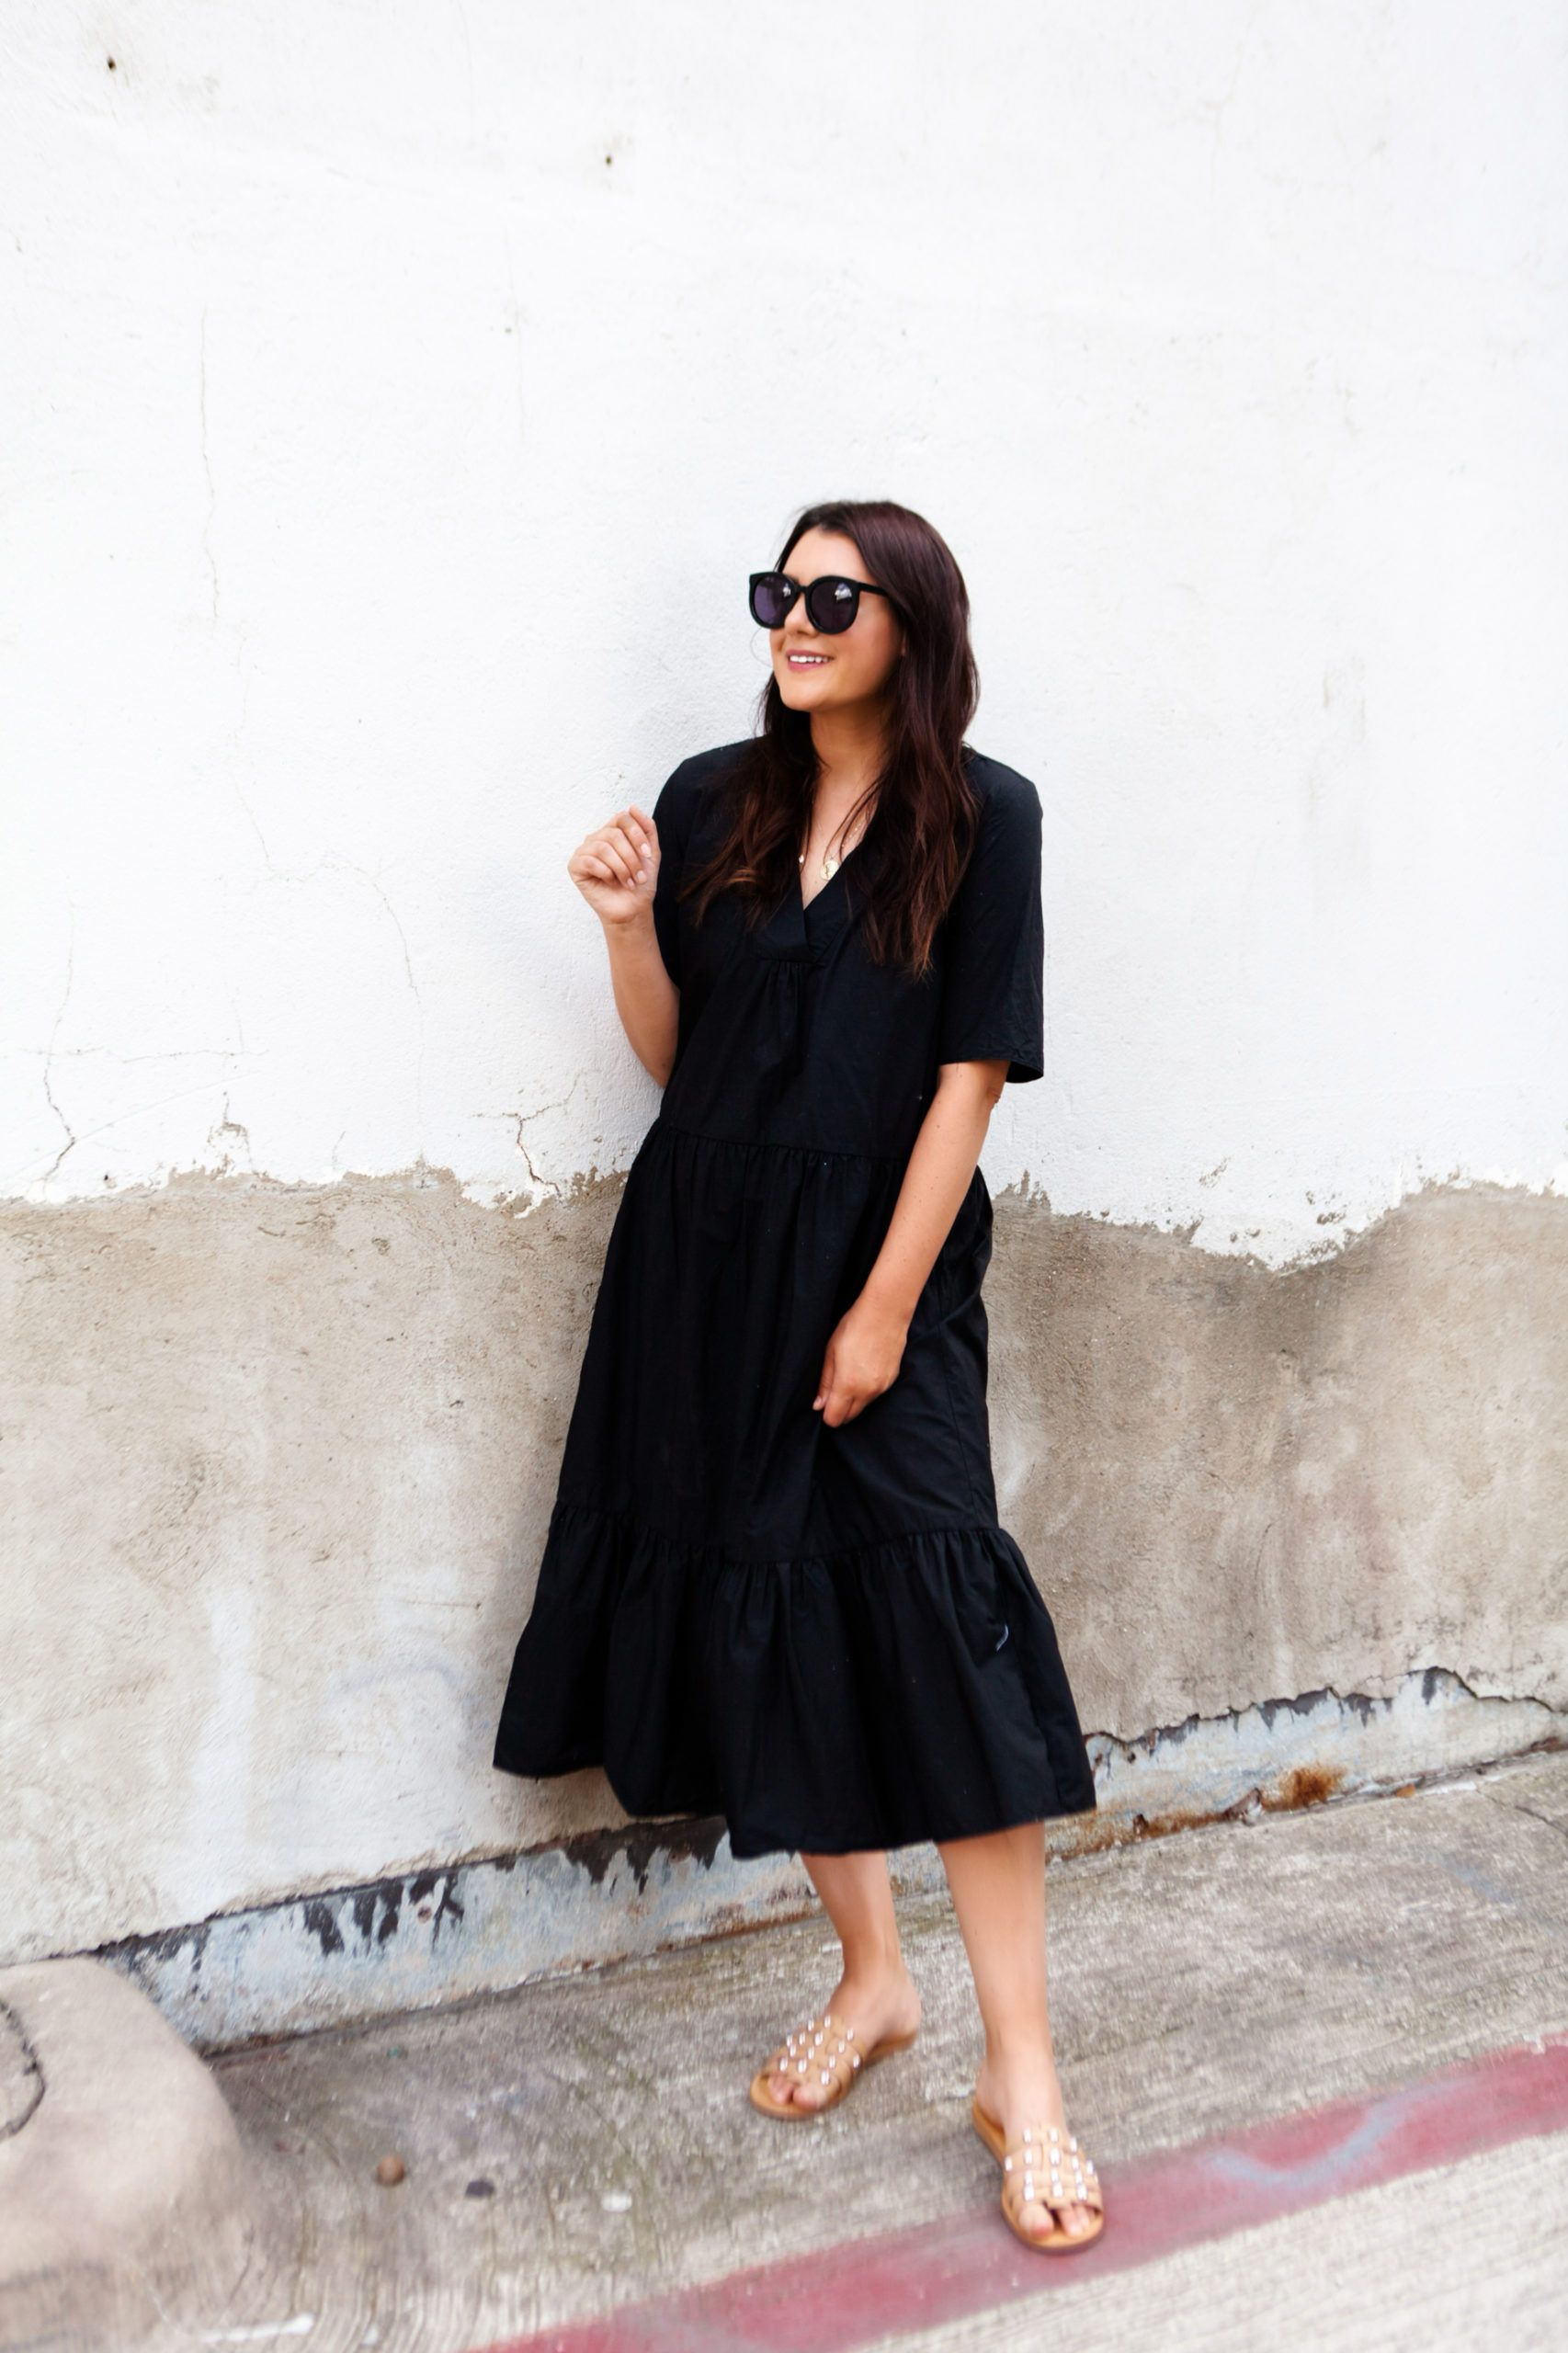 How To Style Black Dresses For Summer Kendi Everyday Loose Black Dress Summer Dress Outfits Summer Dresses [ 2560 x 1706 Pixel ]